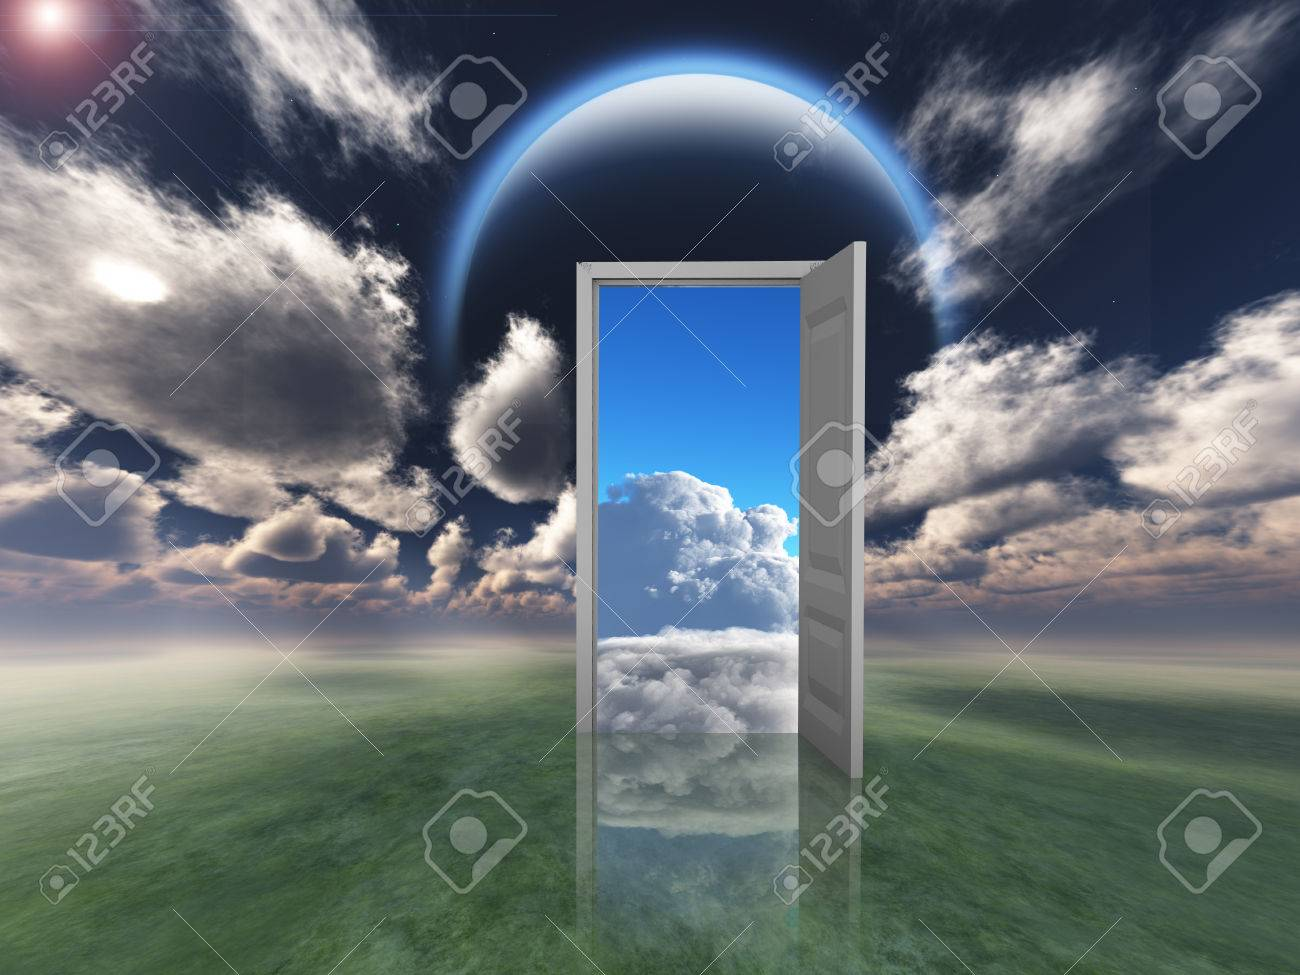 Doorway into other world Stock Photo - 26714211